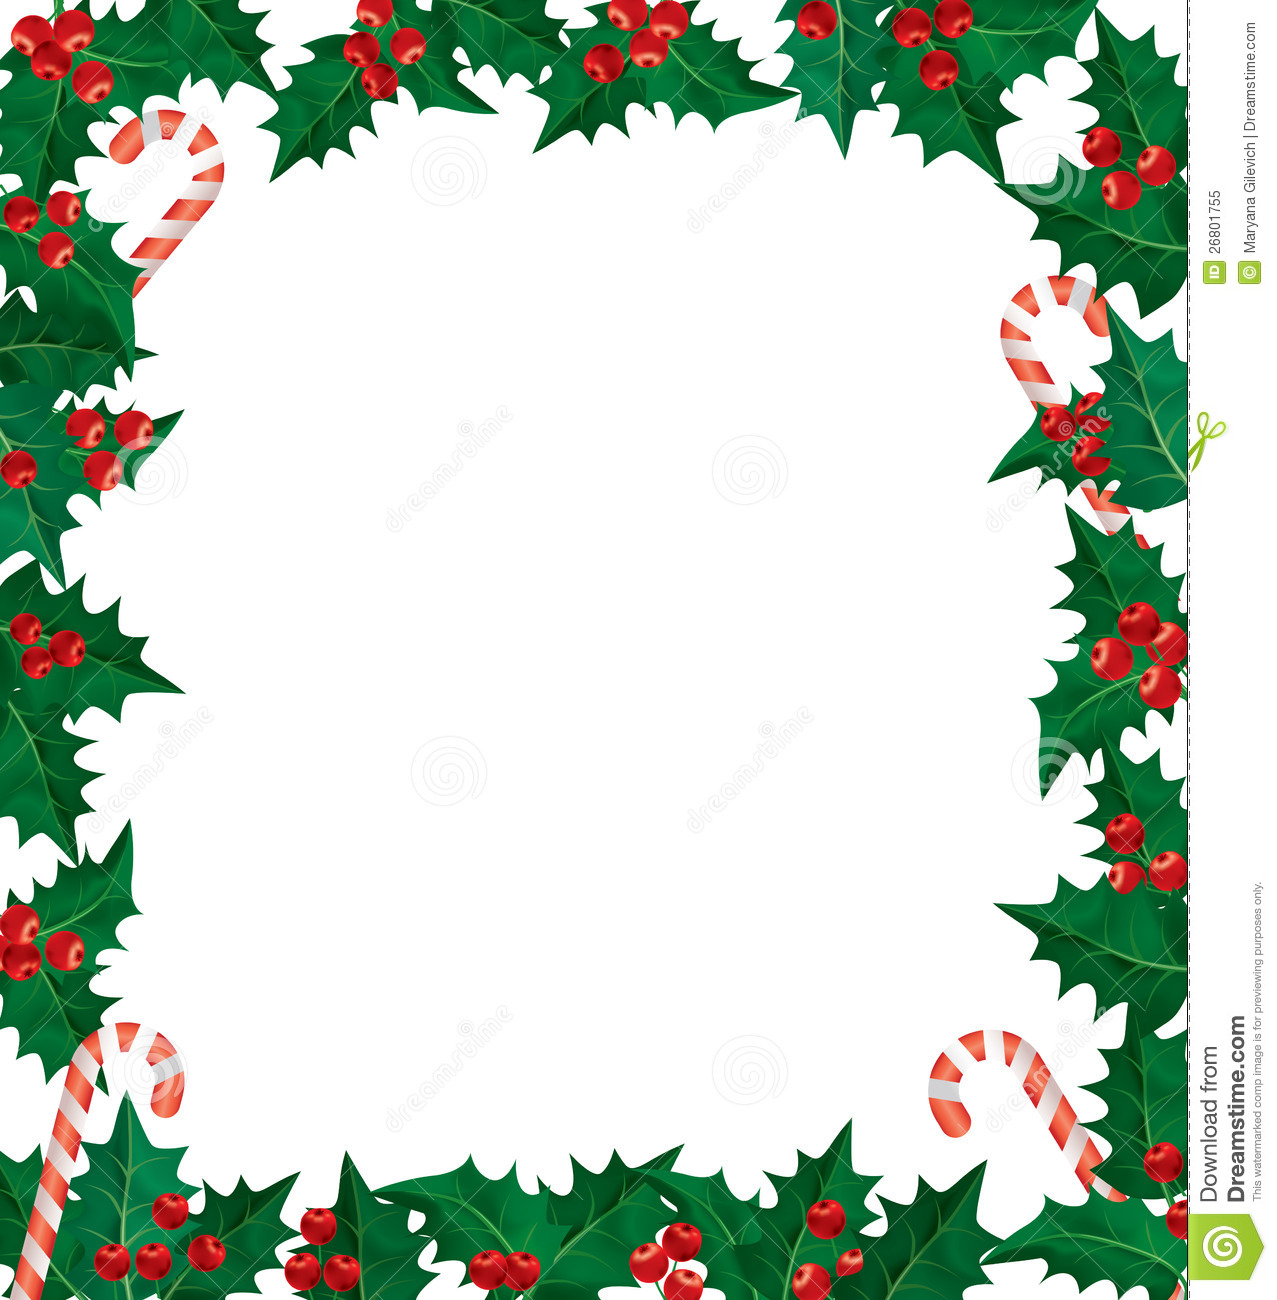 Christmas holly berries frame. Using gradient mesh.Eps 10.